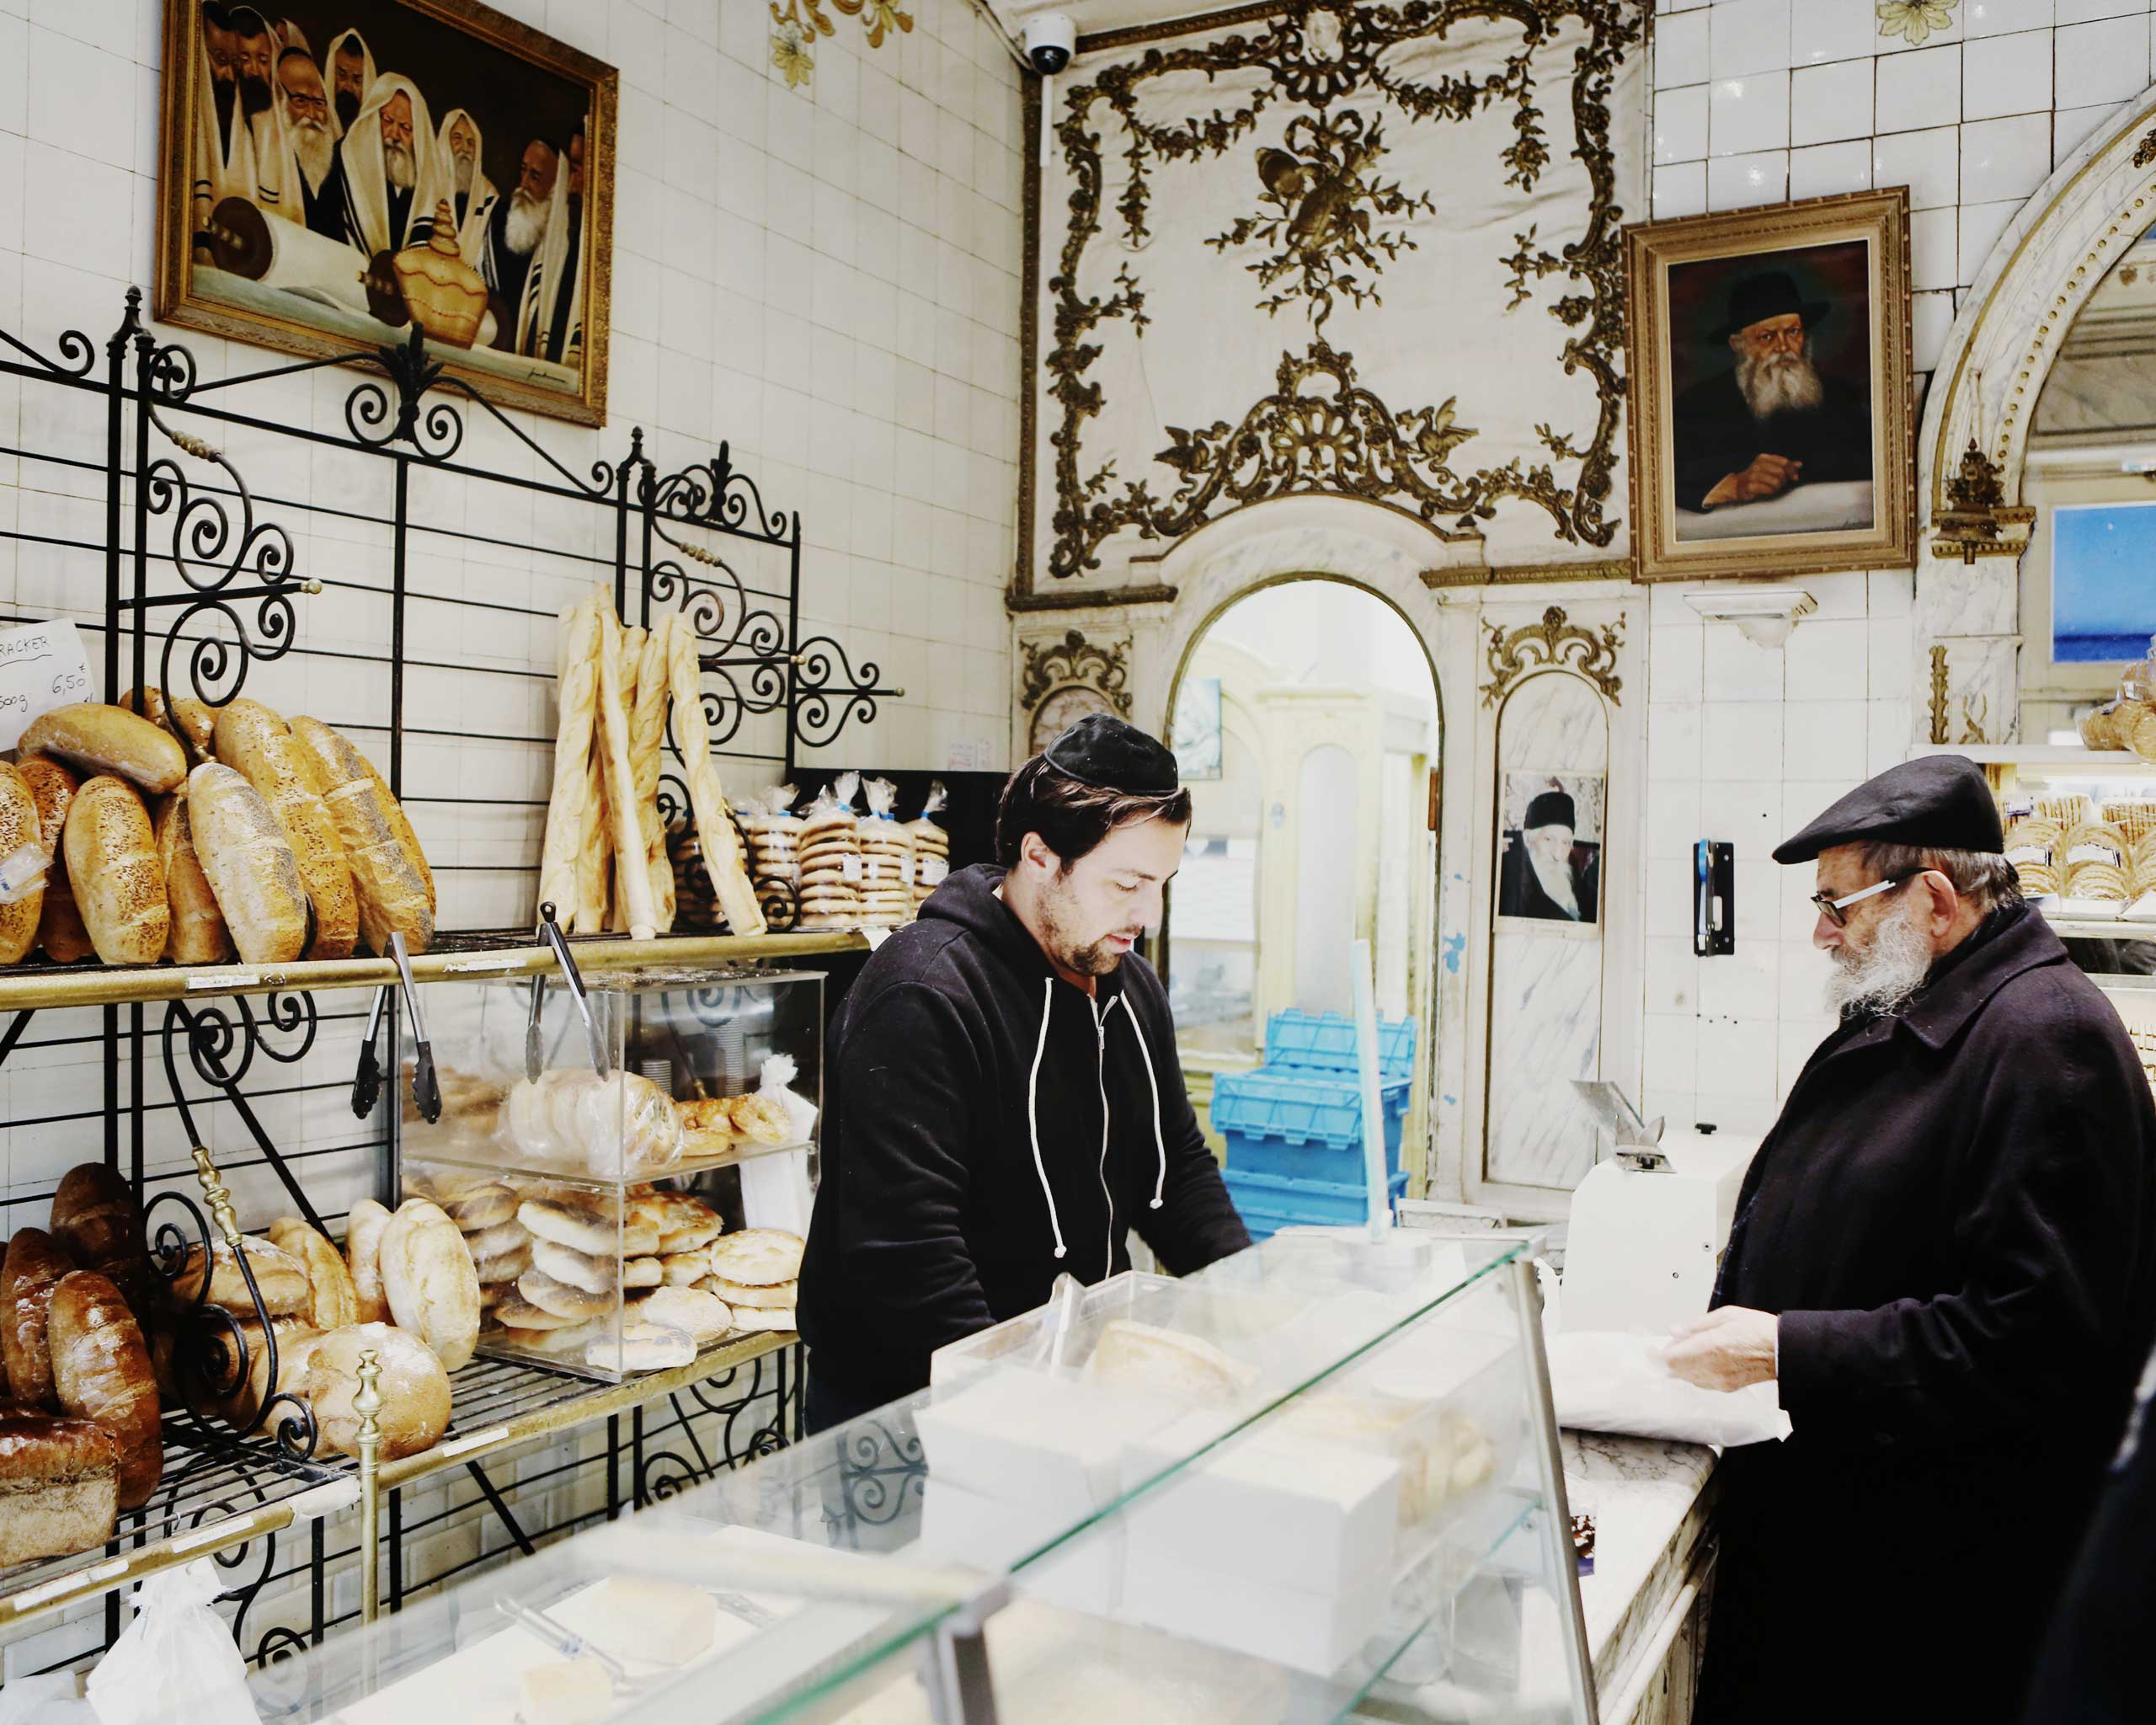 Life goes on at this Jewish bakery in the Marais, a traditionally Jewish quarter in Paris, France, Jan. 11, 2015.